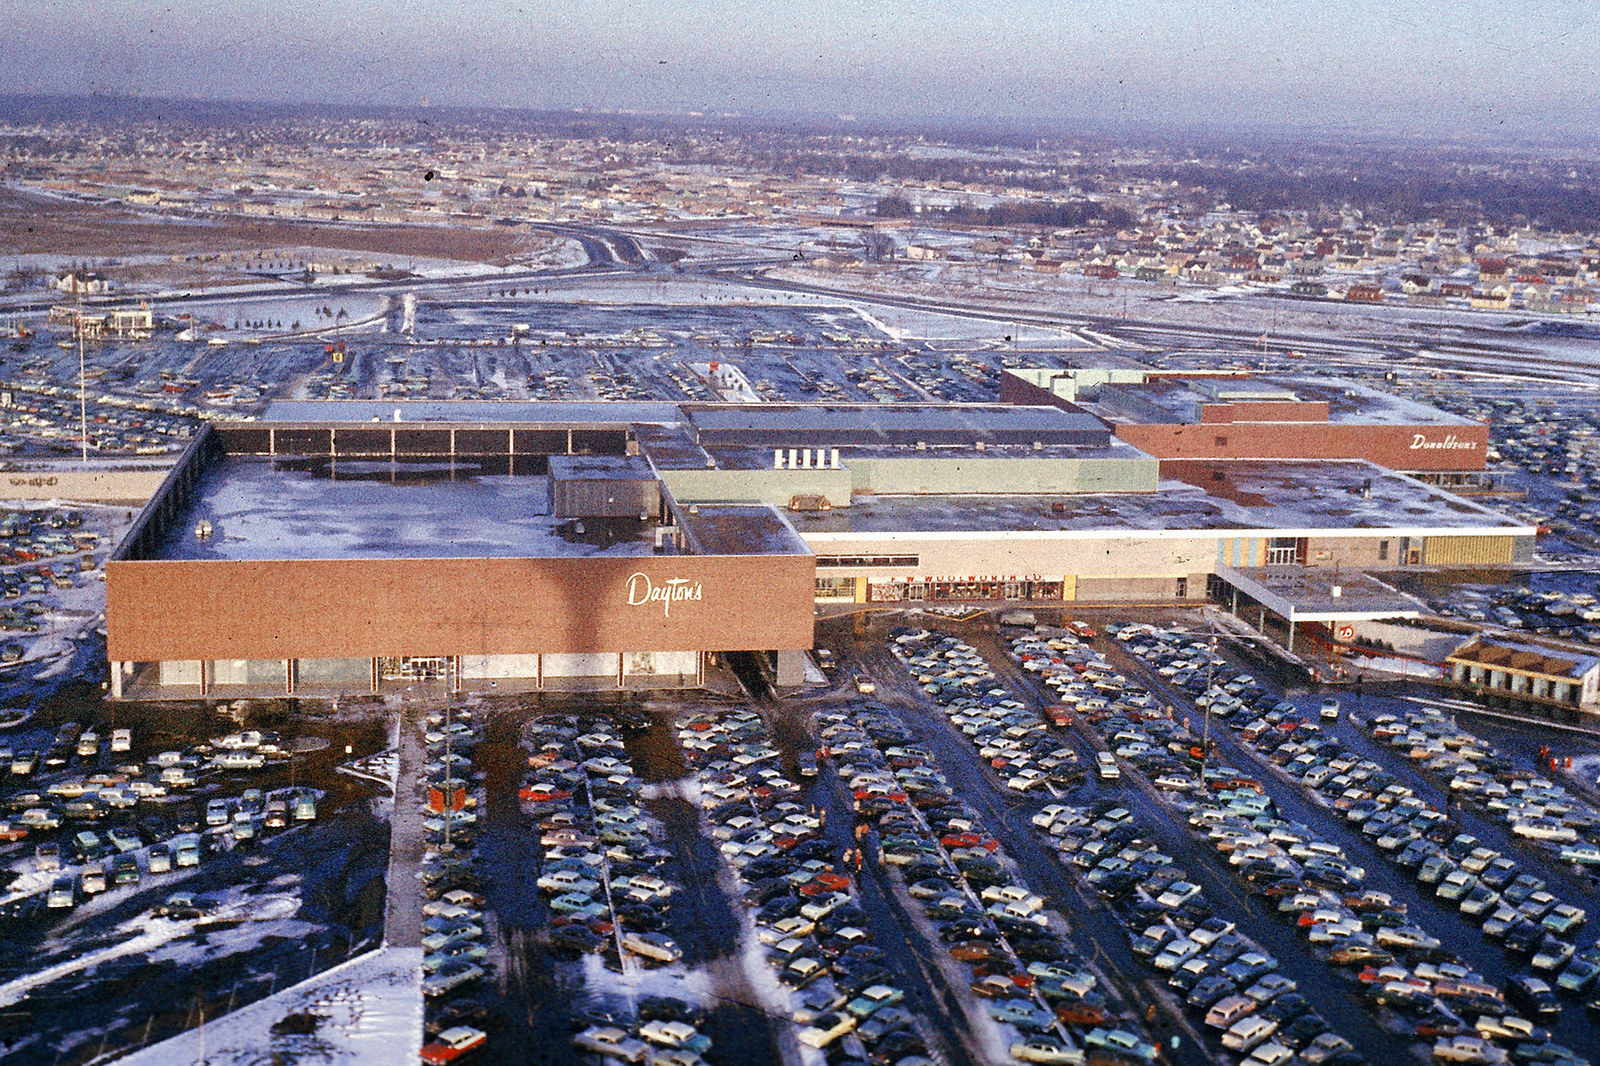 This Is What America's First Shopping Mall Looked Like When It Opened